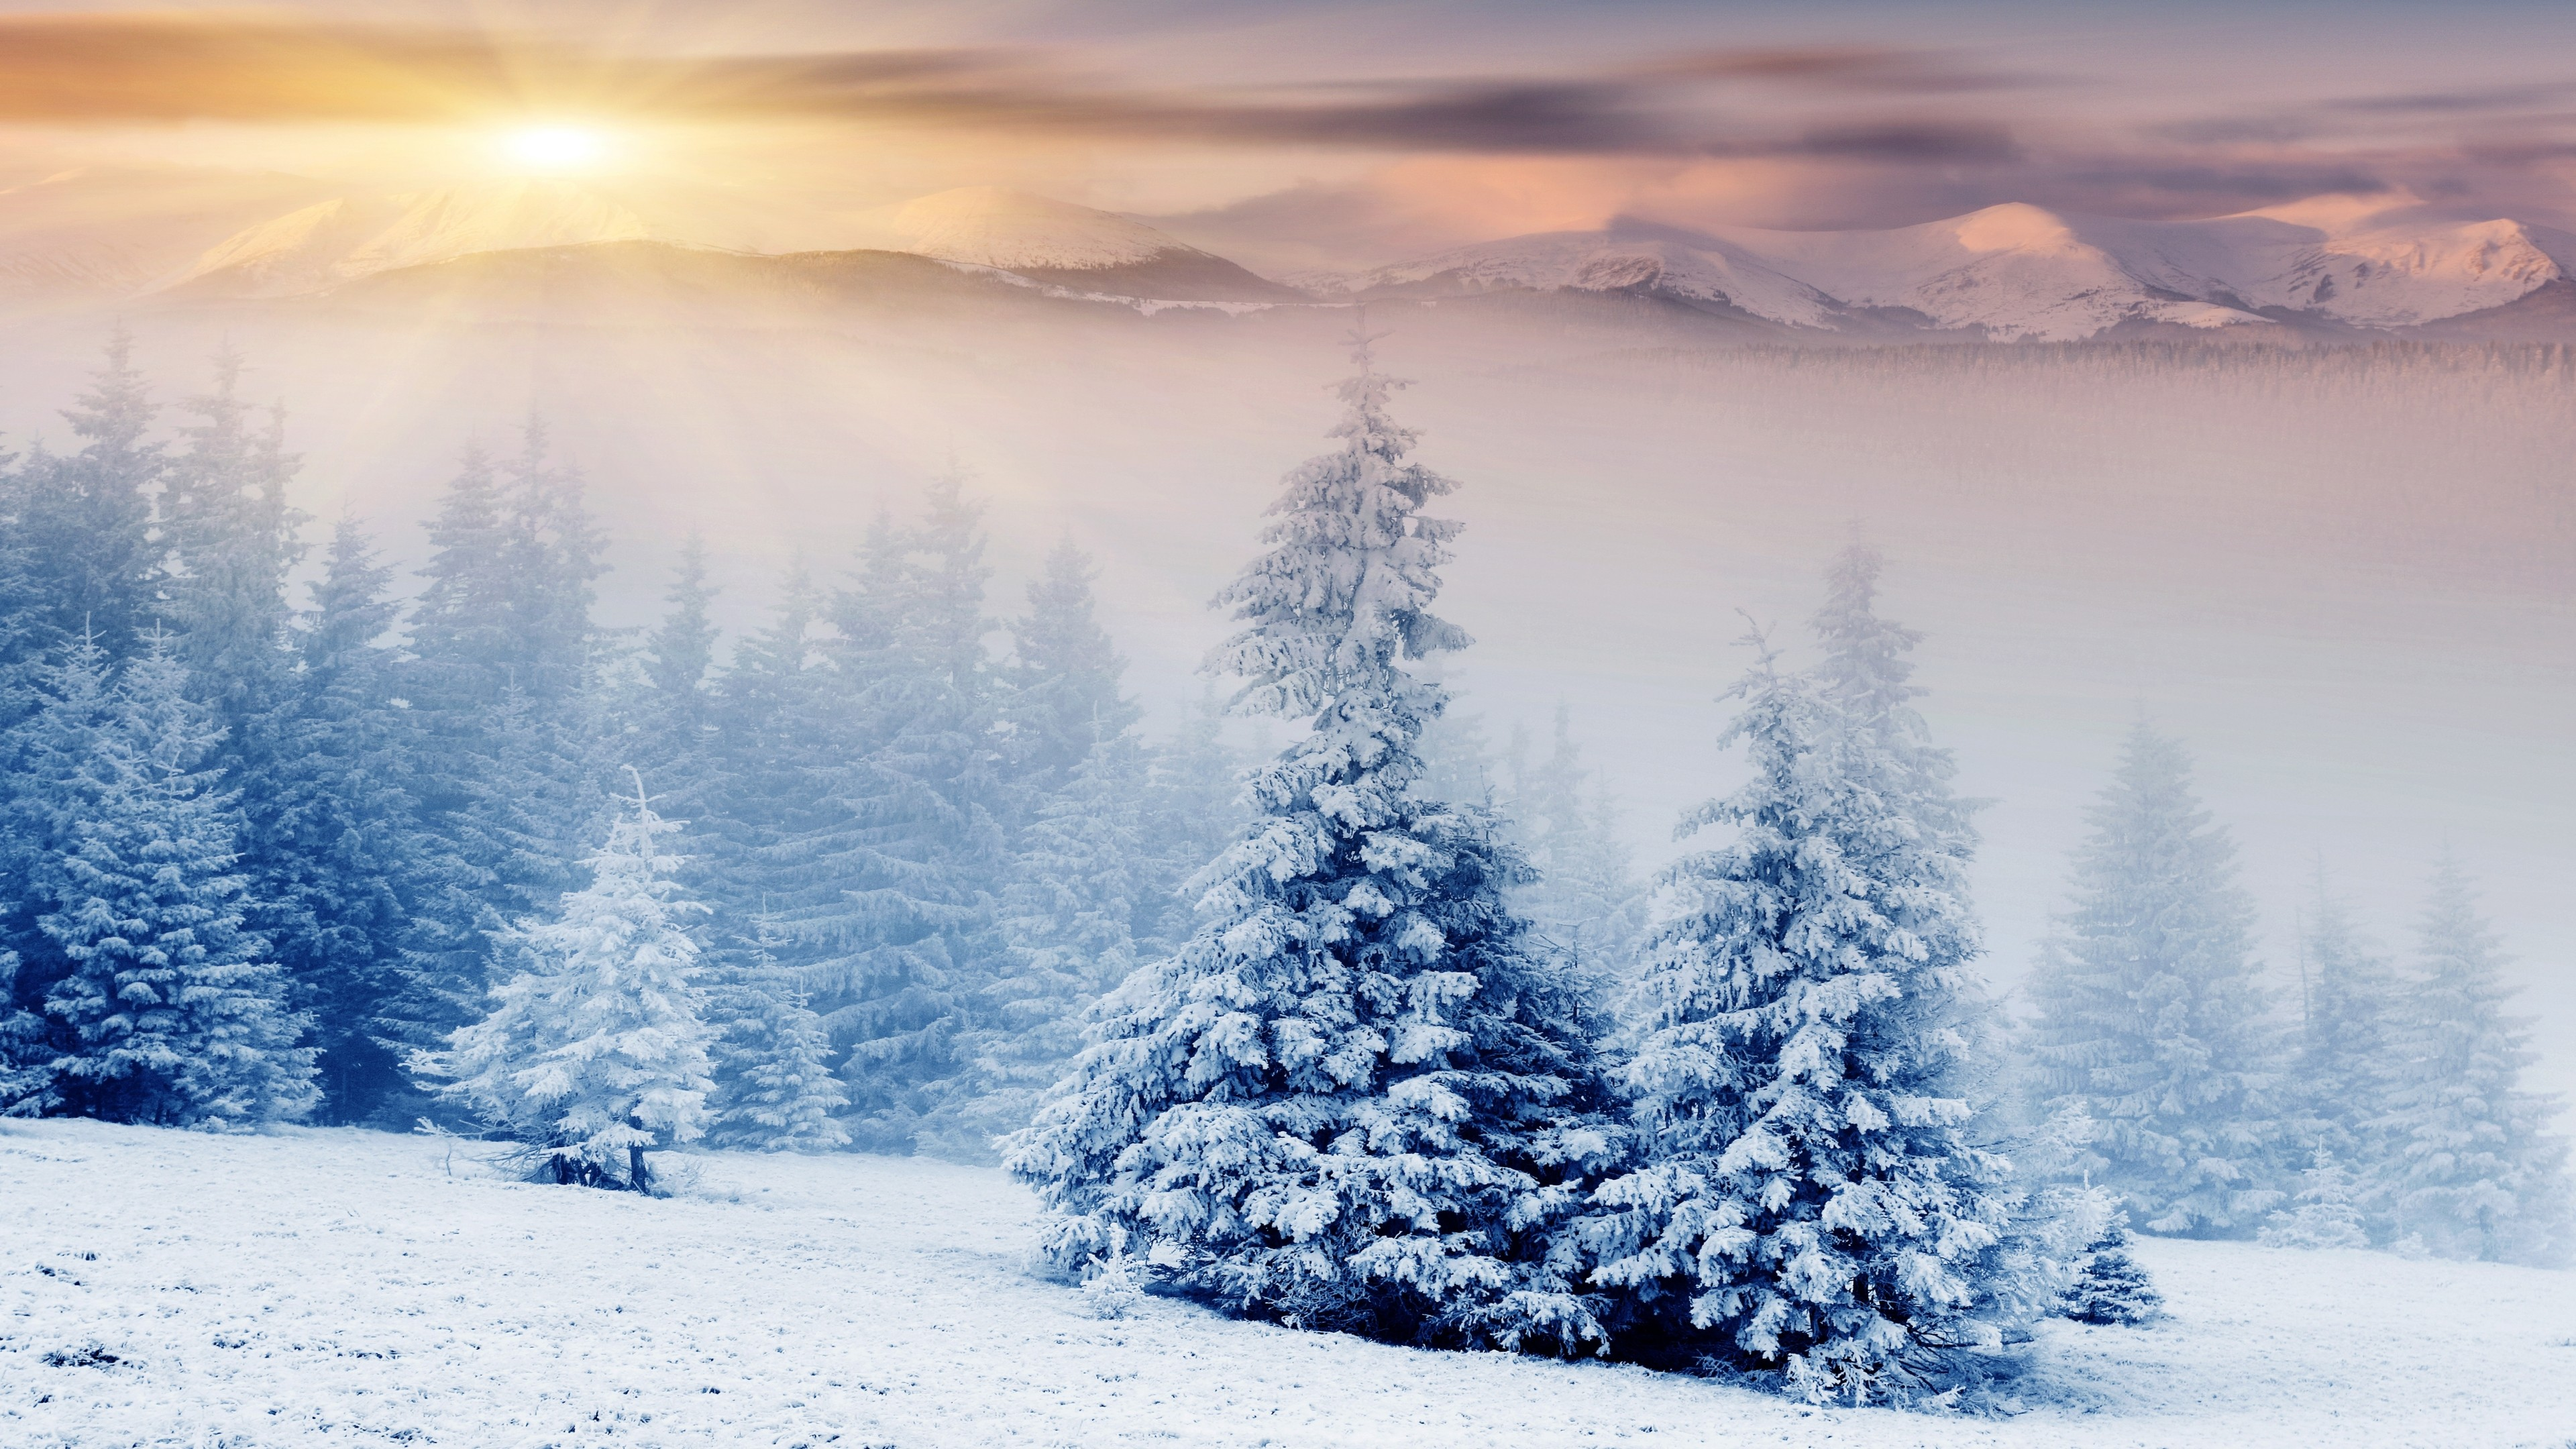 Wallpaper Trees 5k 4k Wallpaper Pines Mountains Snow Winter Sunset Nature 5701